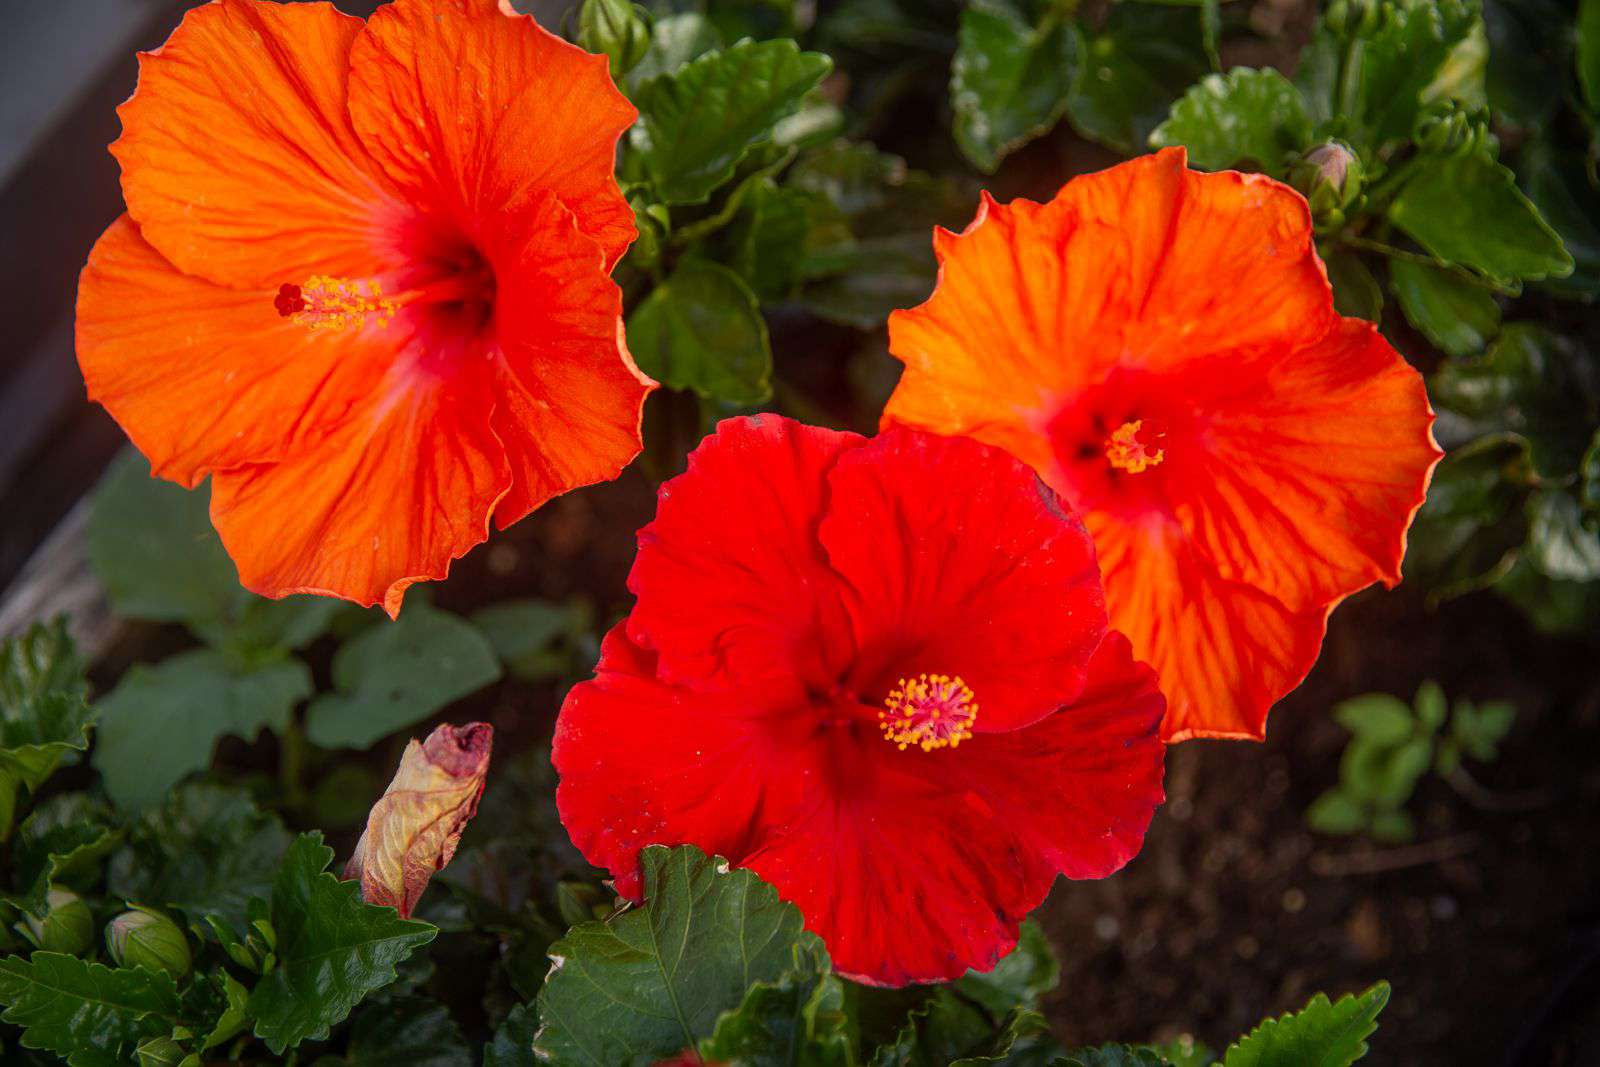 Hibiscus bush with large orange-red flowers with long anther in middle